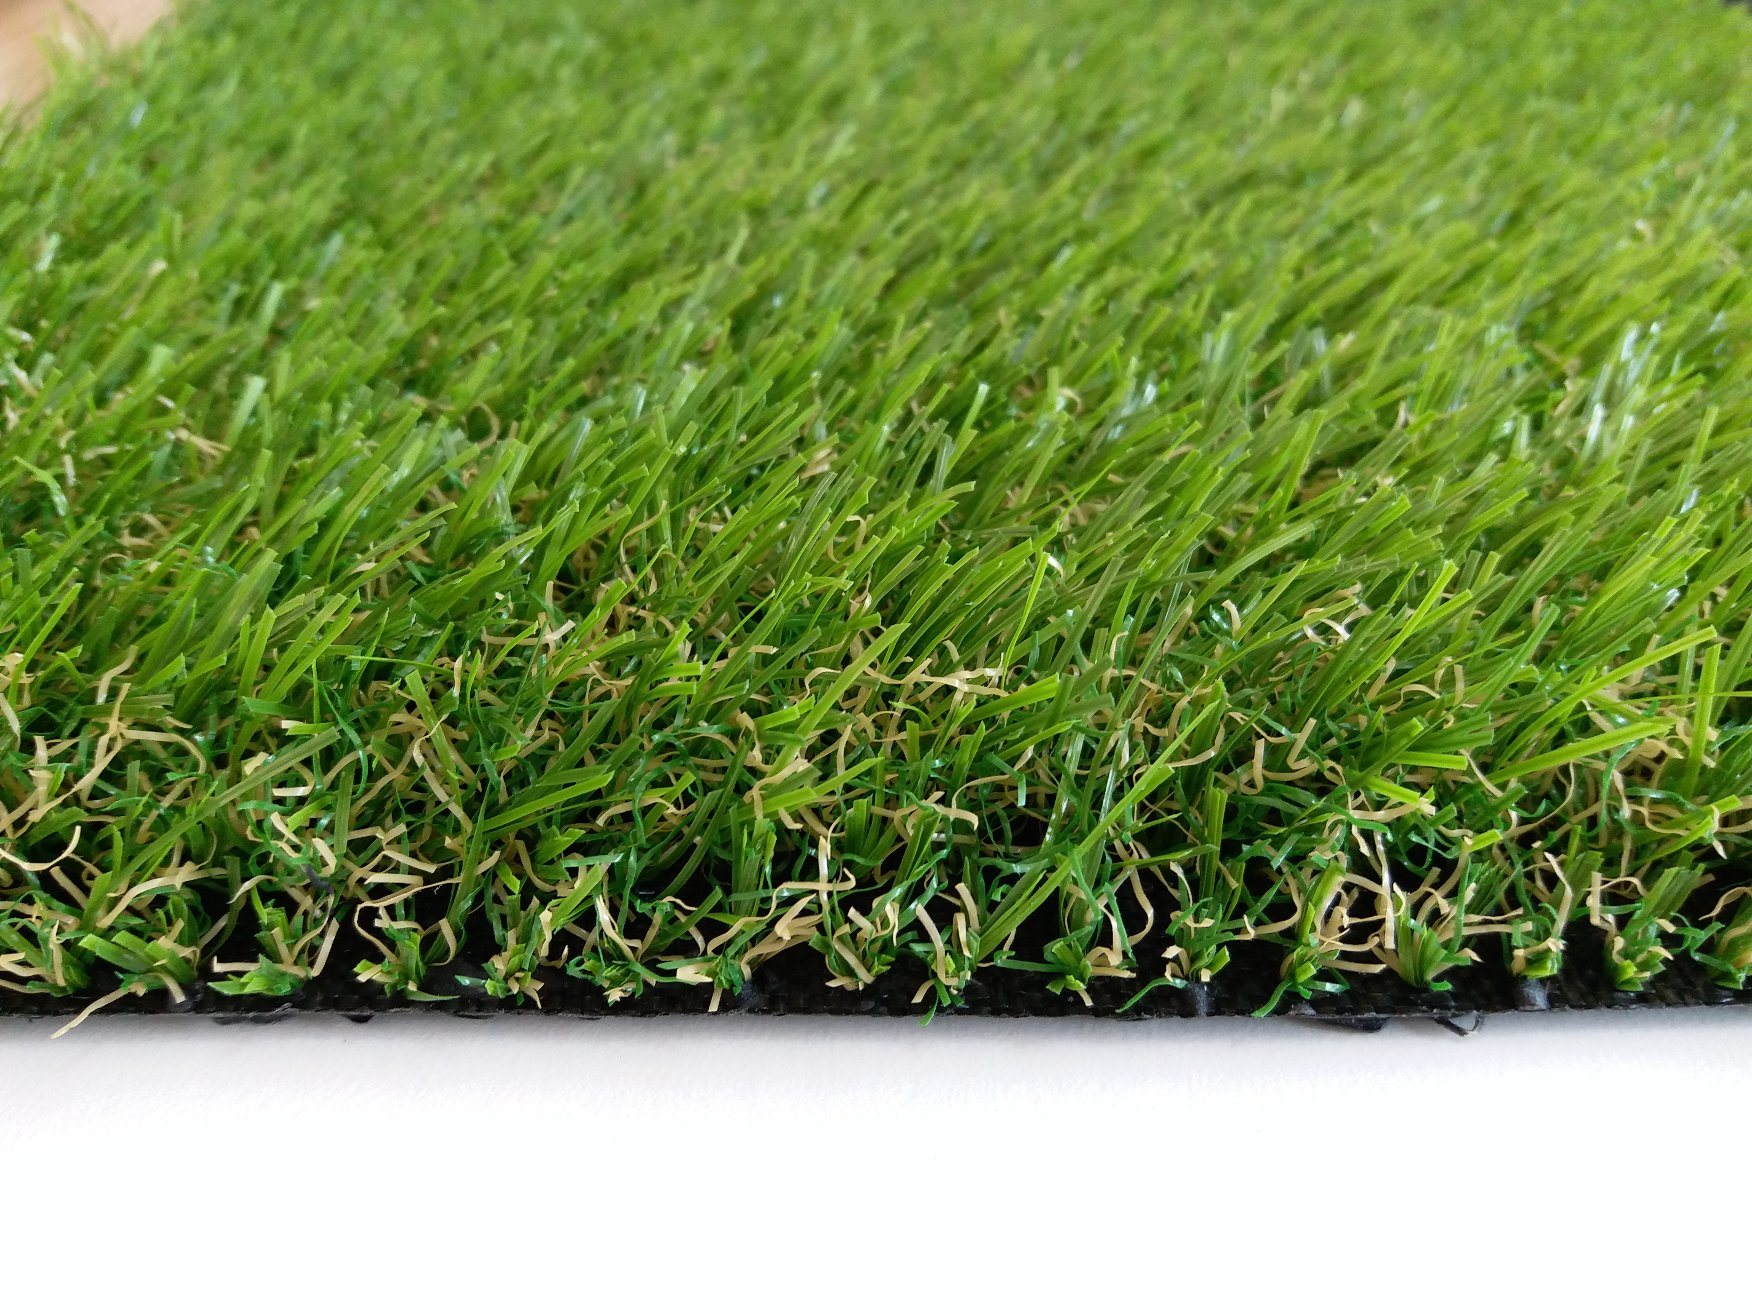 Lawn Artificial Grass Synthetic Grass for Landscaping